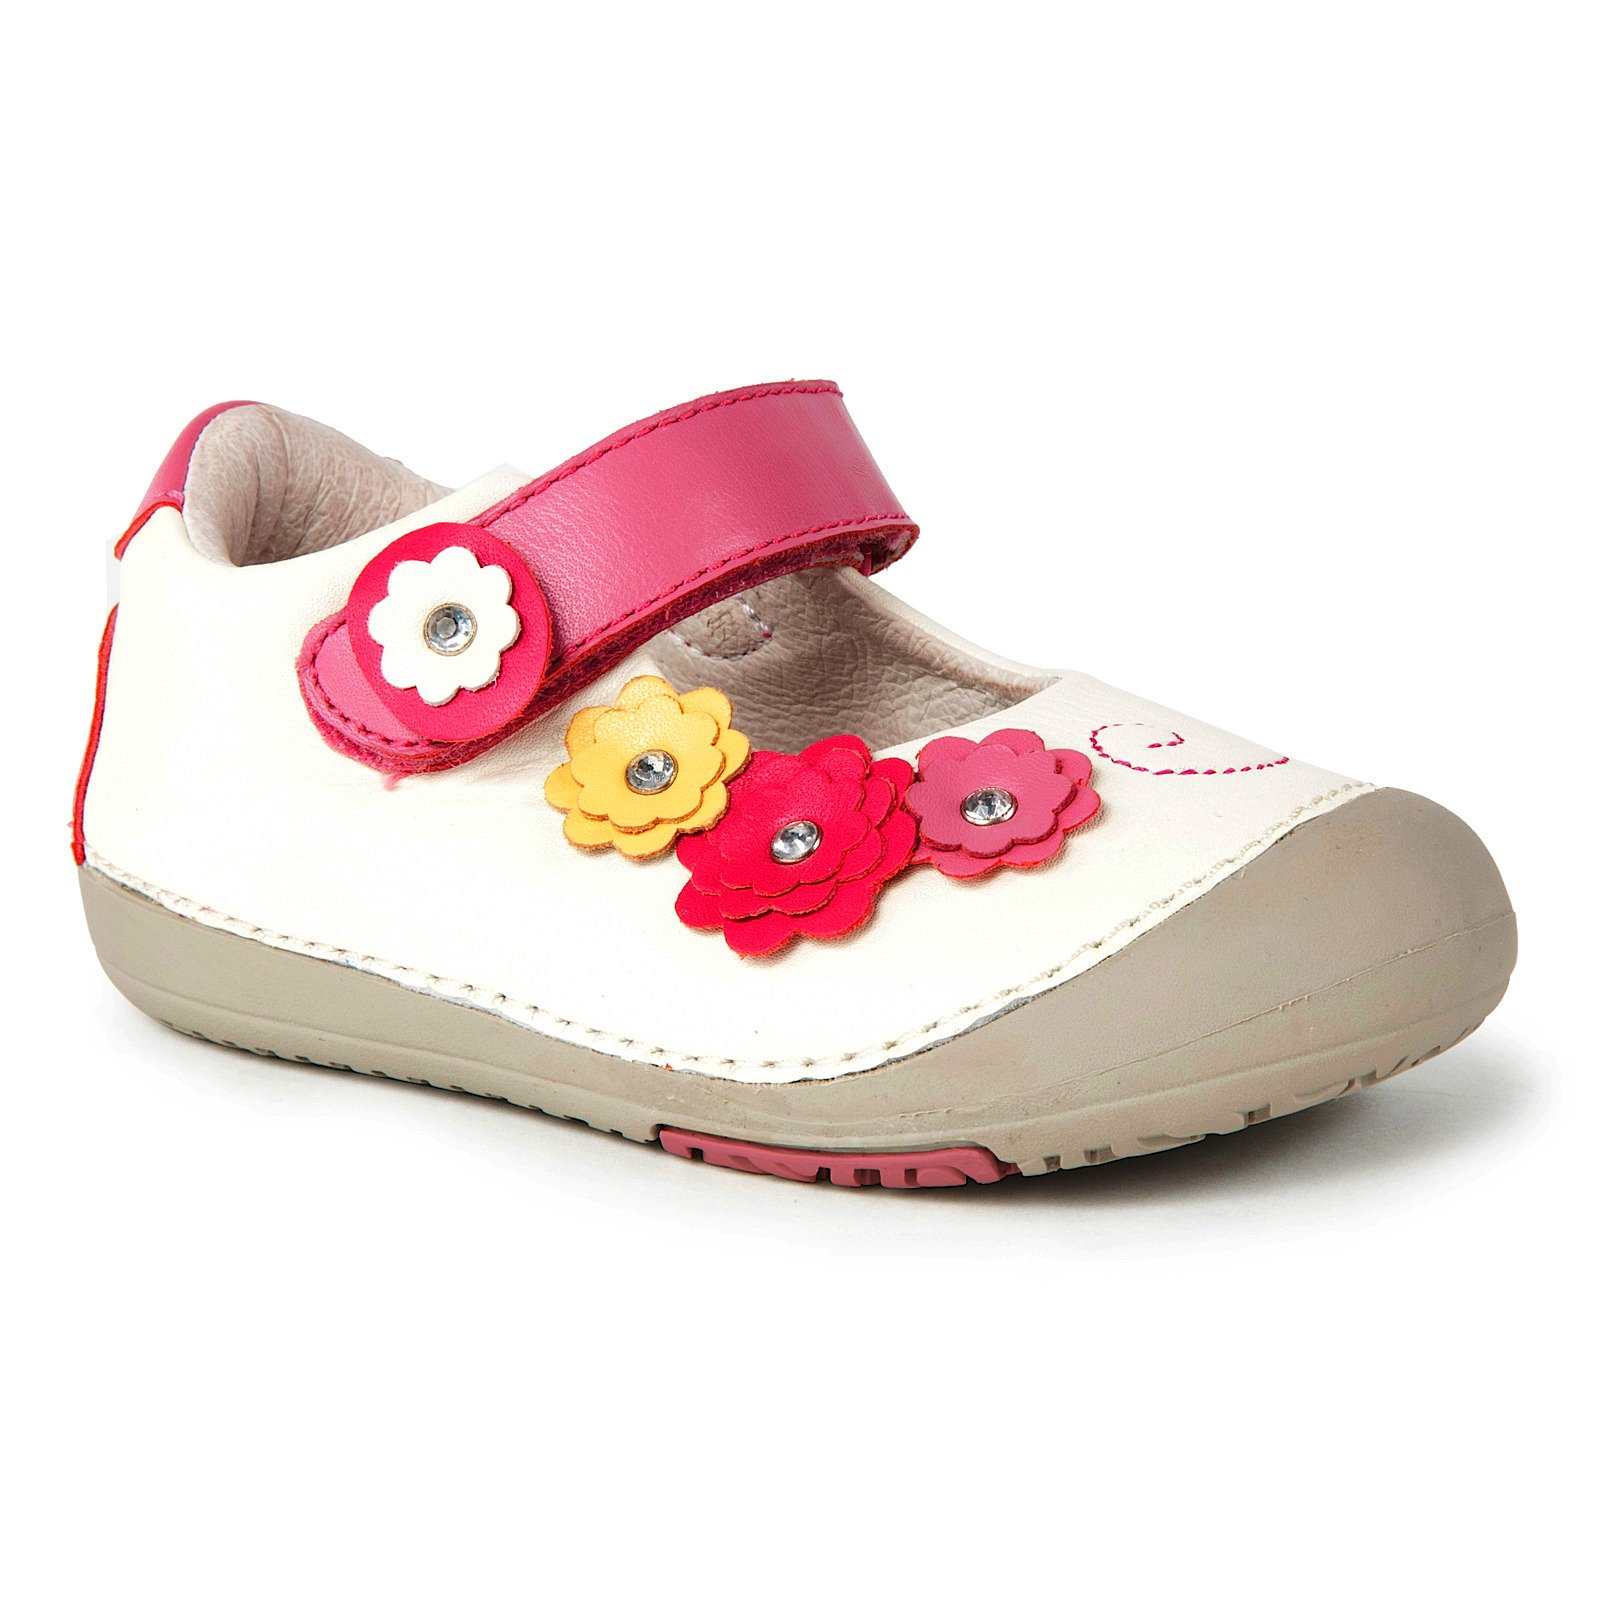 Momo Baby Girls First Walker/Toddler Flower Power Mary Jane Leather Shoes - 8 M US Toddler